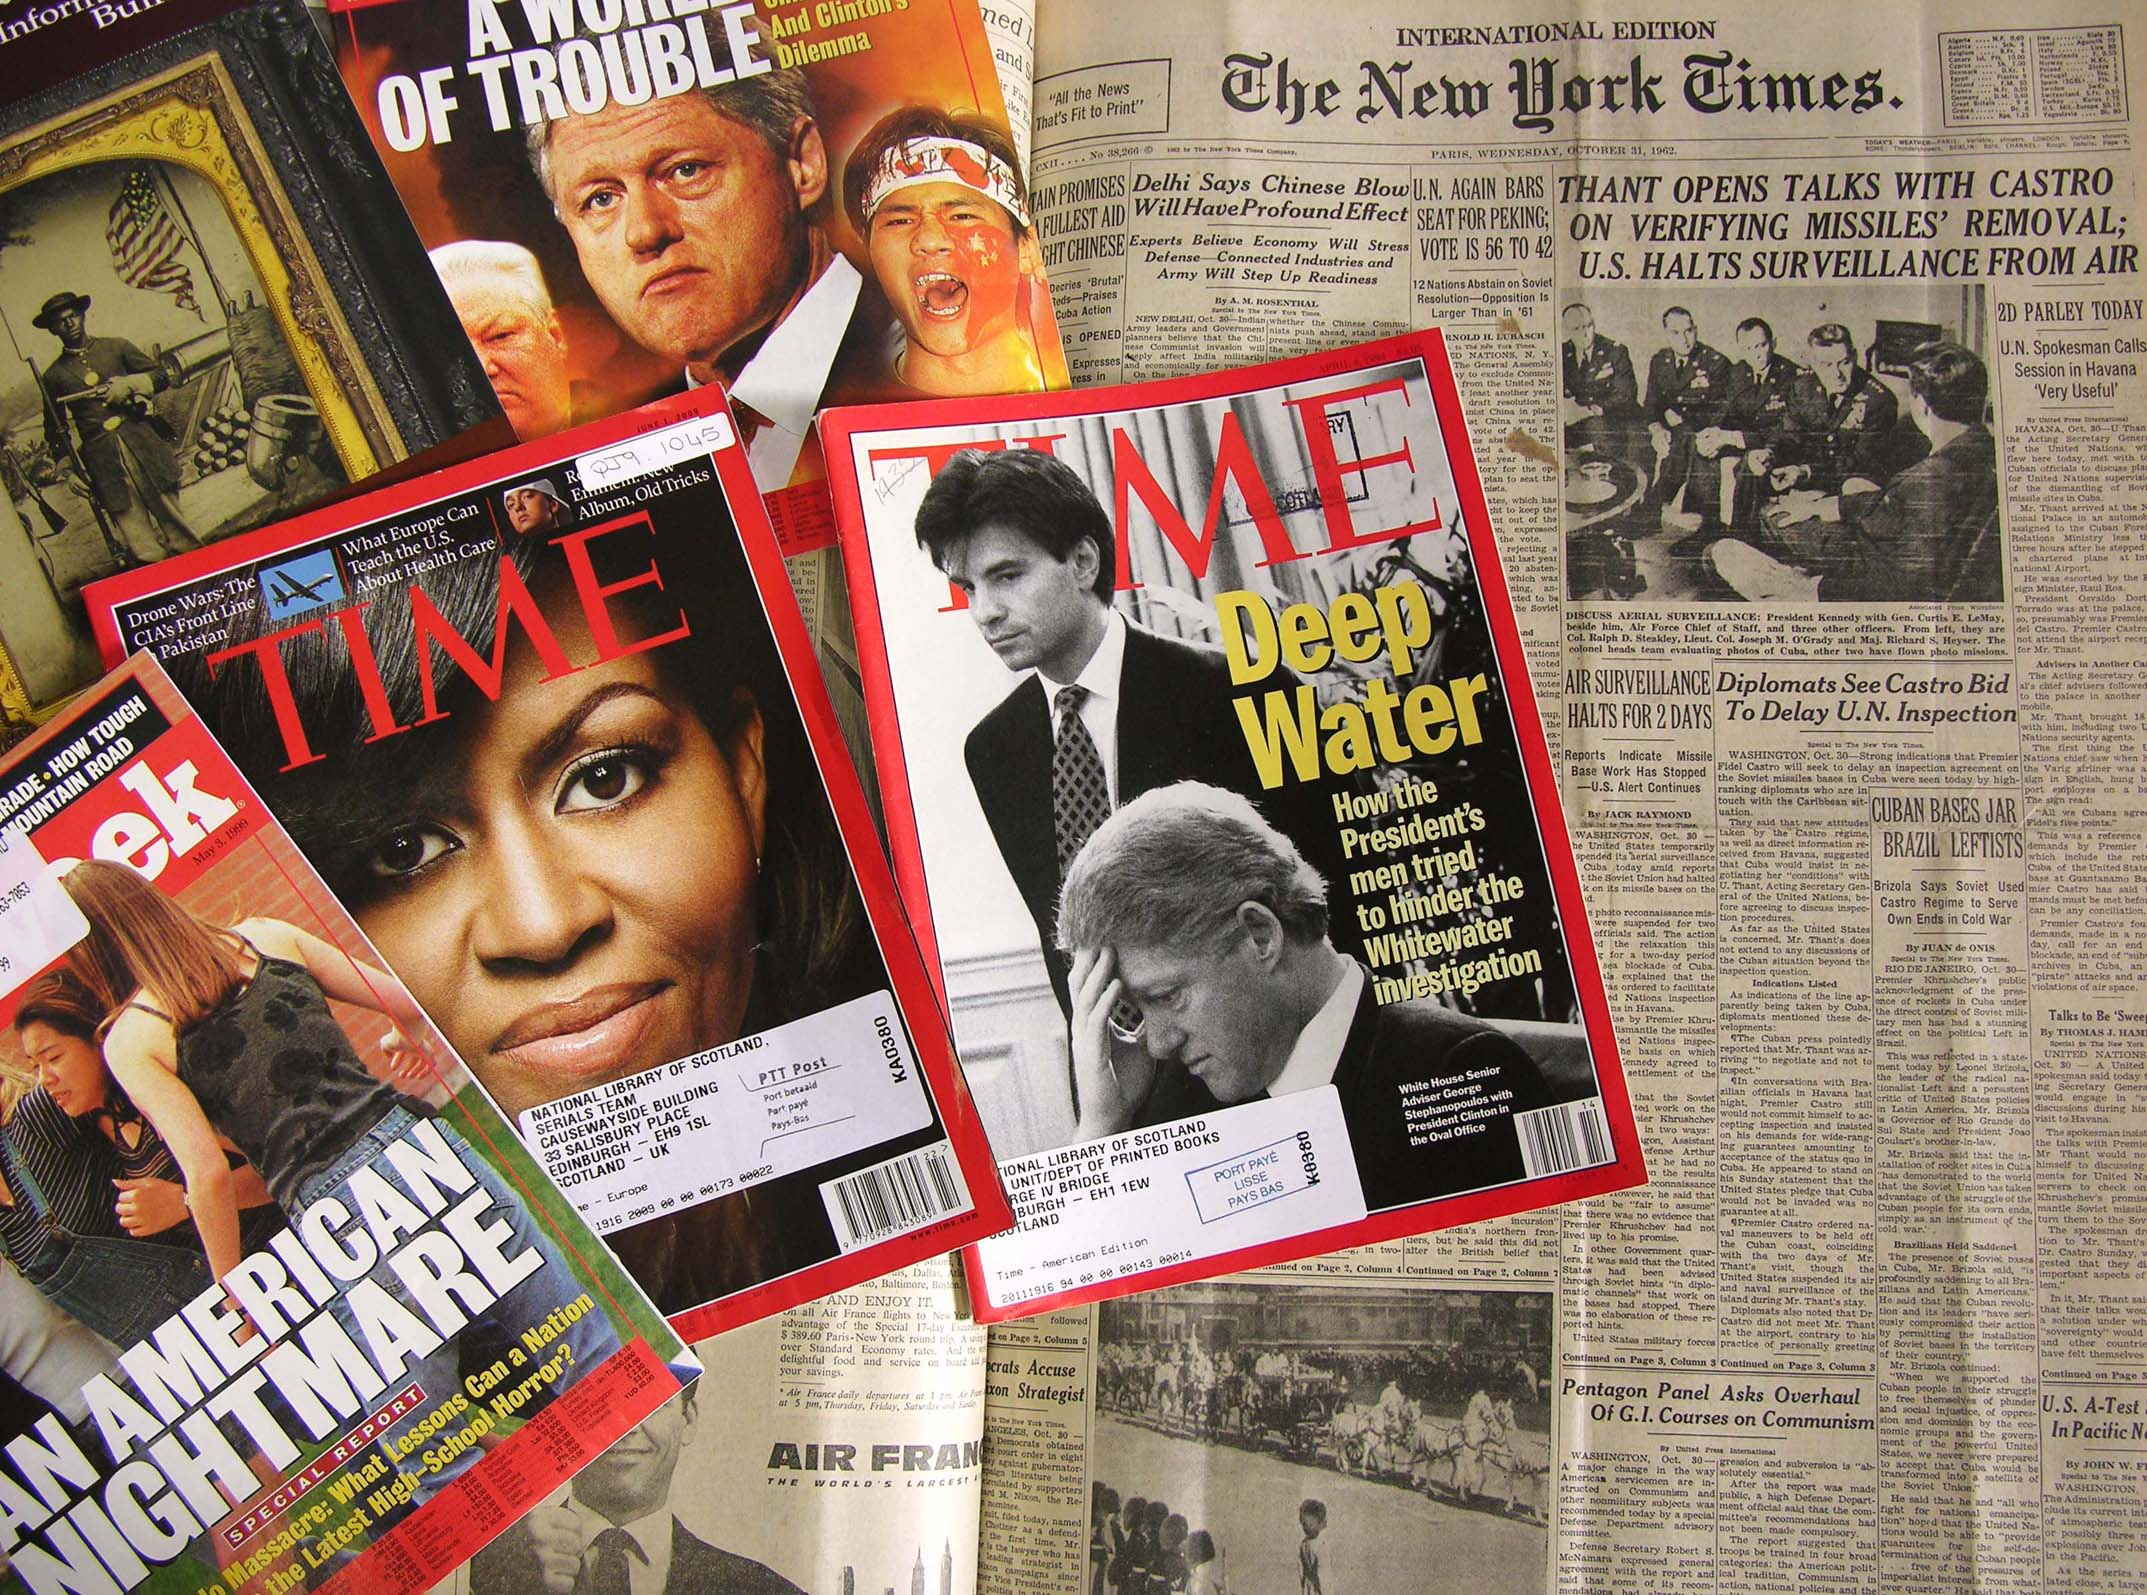 Image of american magazines and newspapers